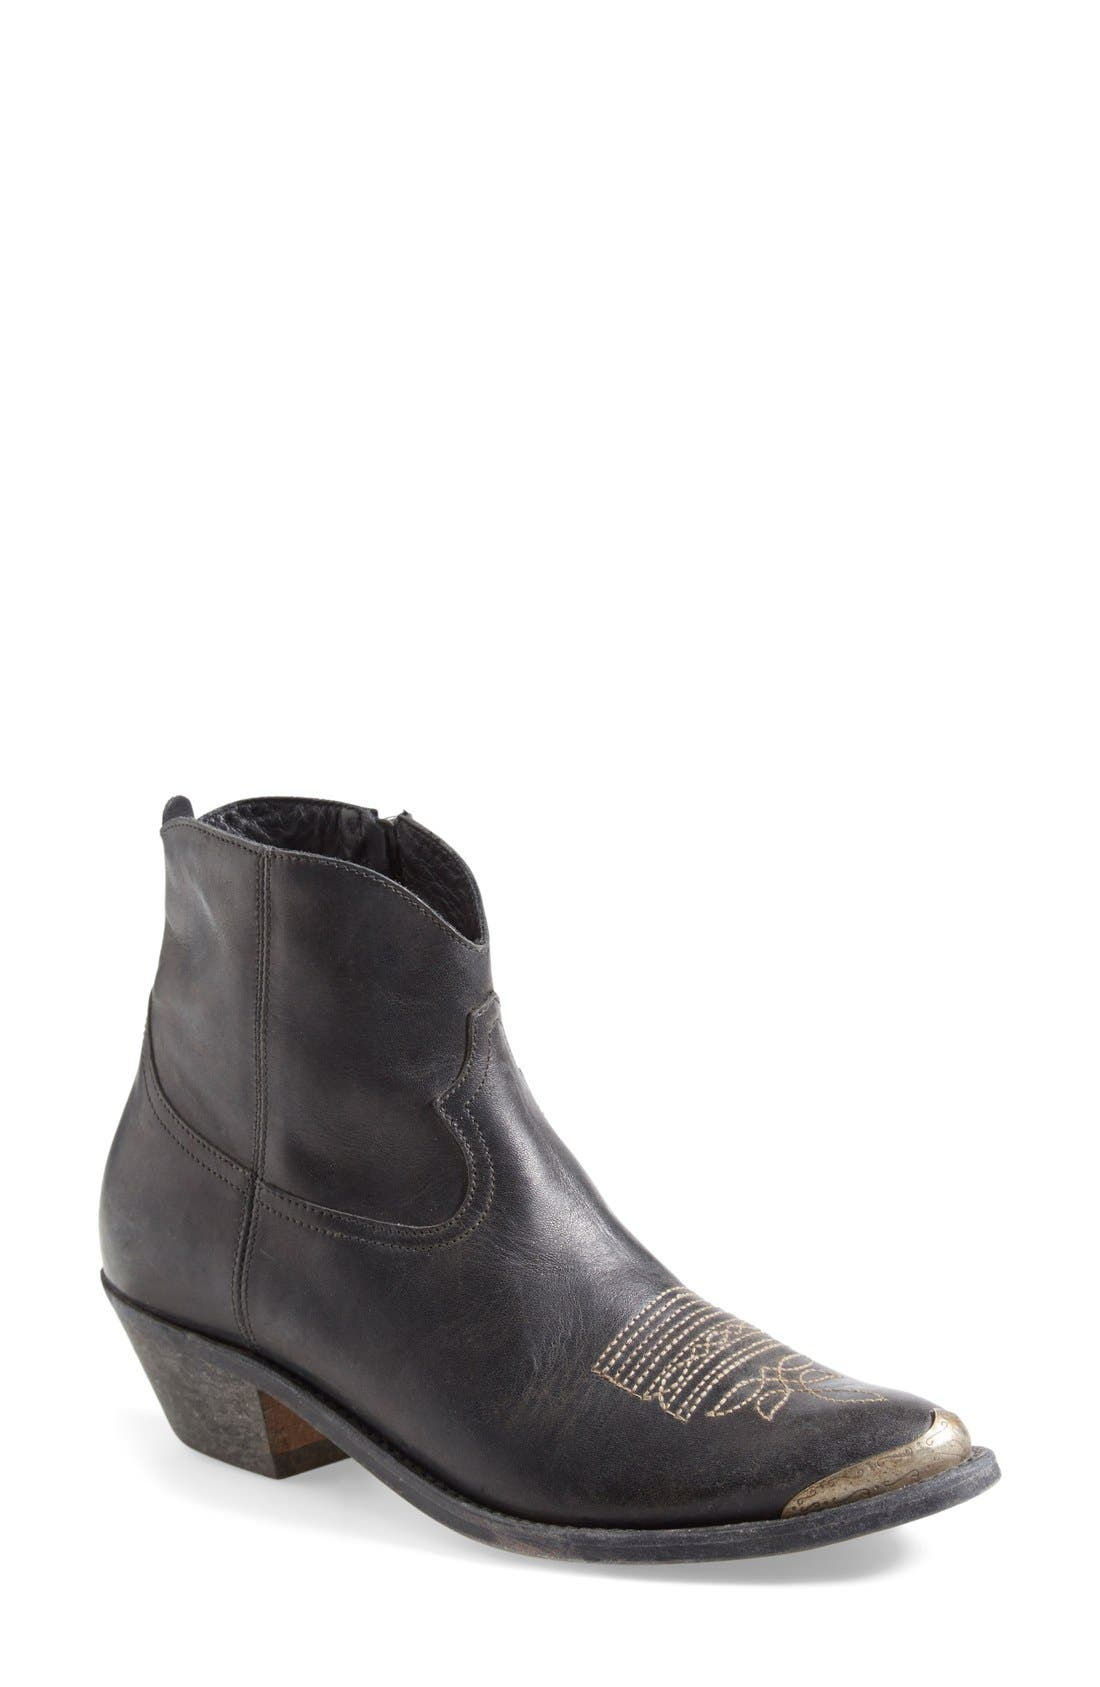 Alternate Image 1 Selected - Golden Goose Pointy Toe Western Boot (Women)